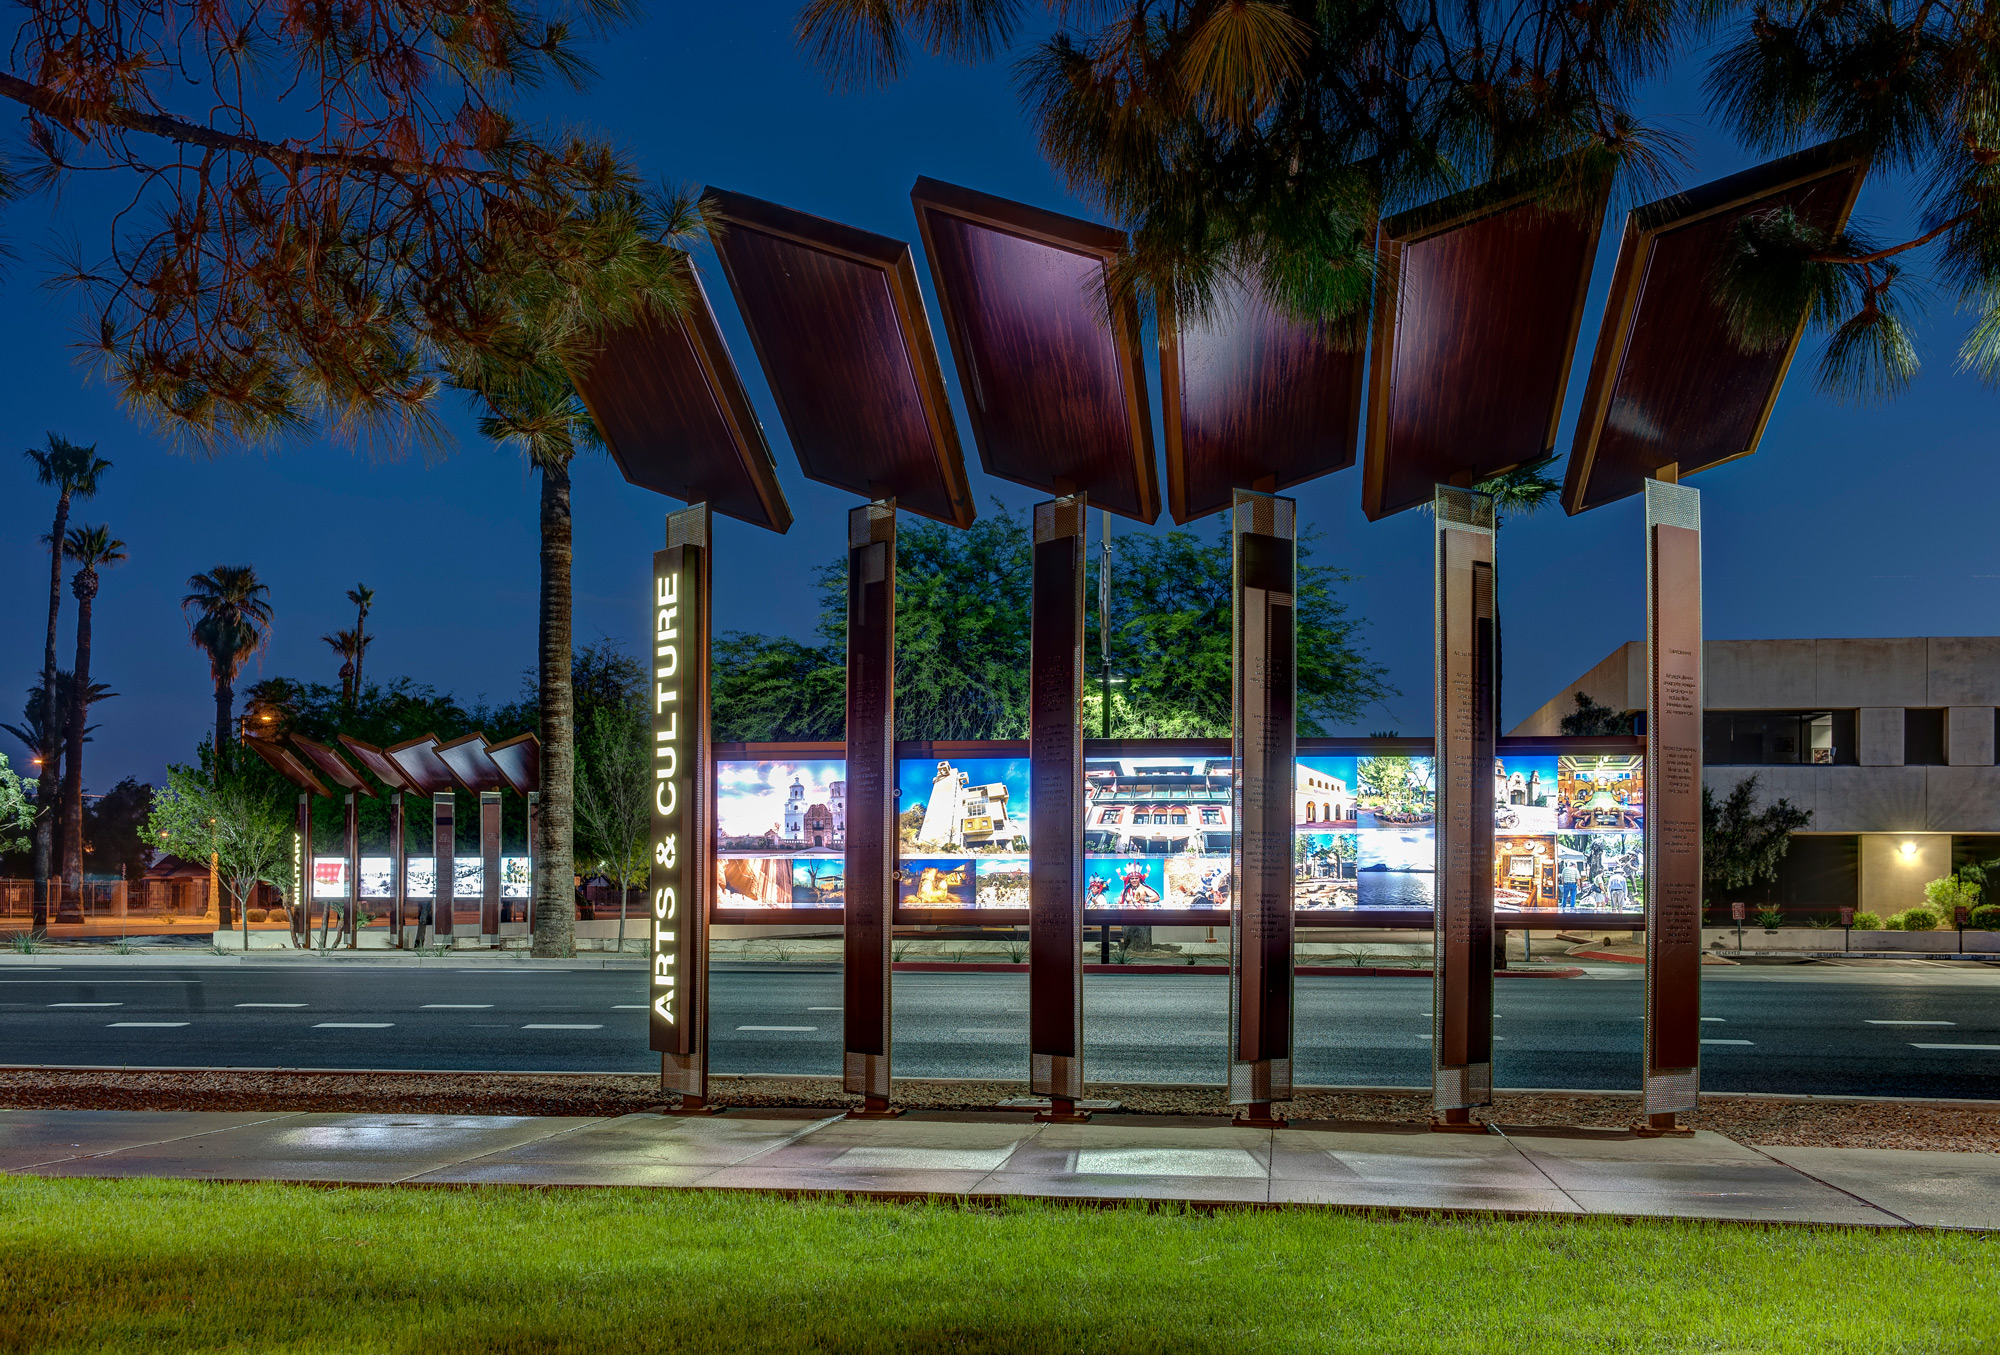 At night, the stainless steel of S-4 picks up and highlights the various colors glowing from the displays.